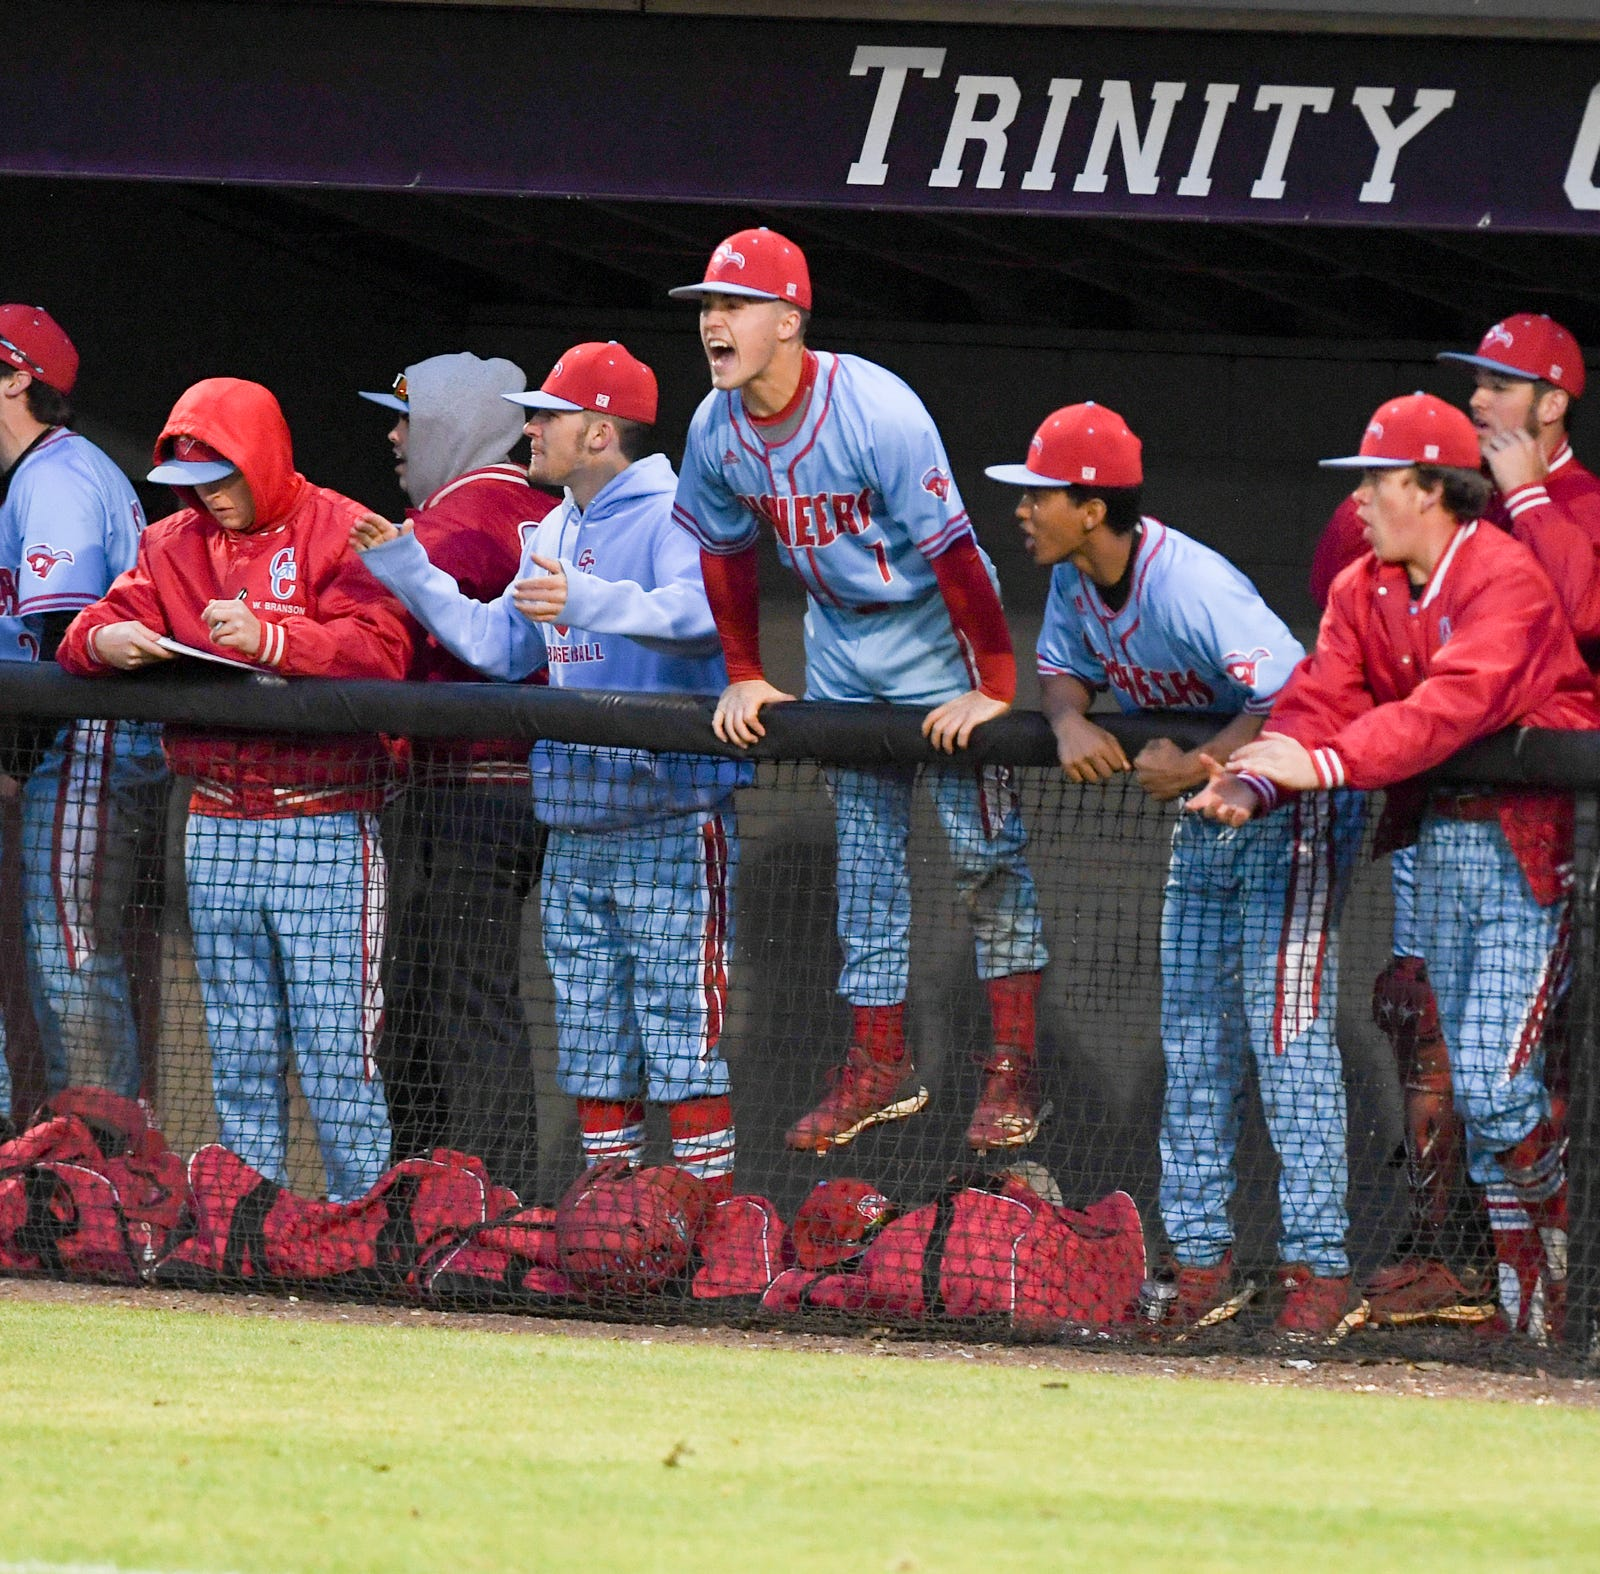 Gibson County jumps to No. 1 in Jackson area baseball rankings during Week 7